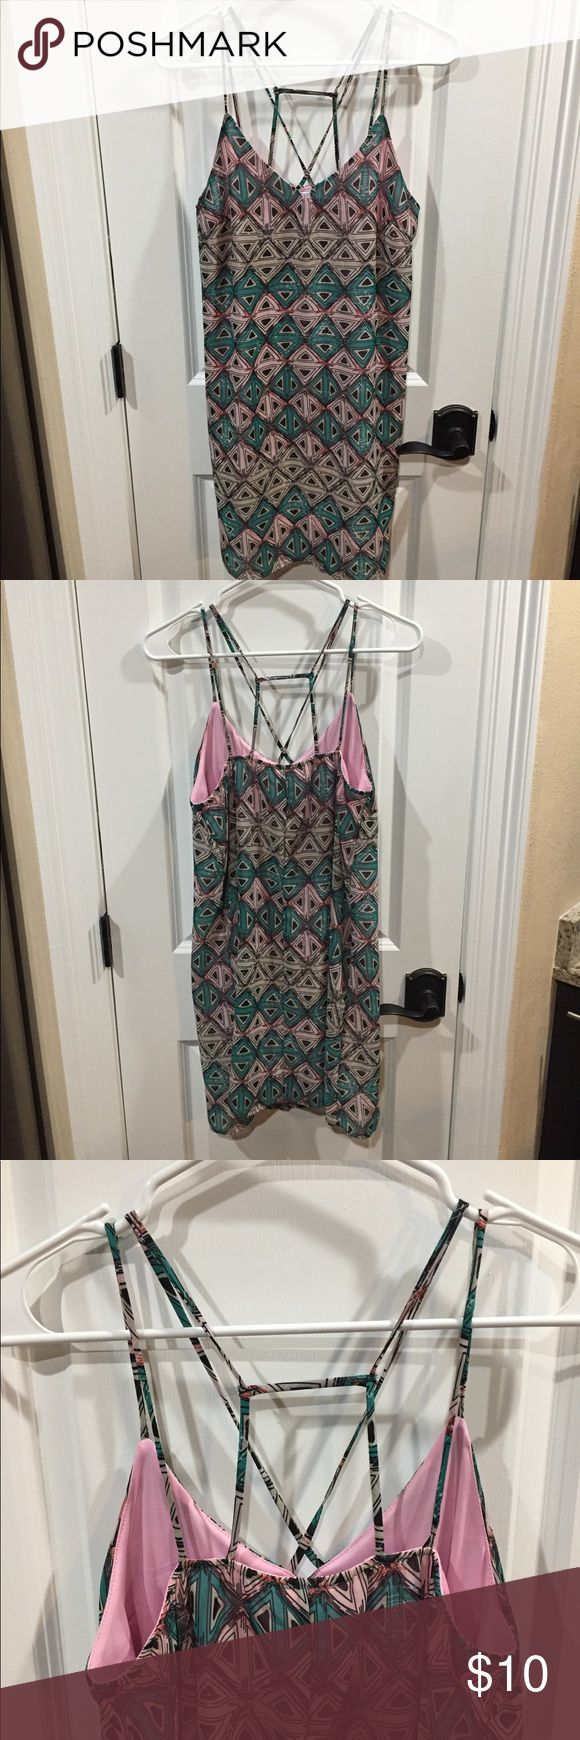 Body Central Geometric Pattern Dress NWOT Pink and green geometric pattern with cute criss cross straps in front and back. Body Central Dresses